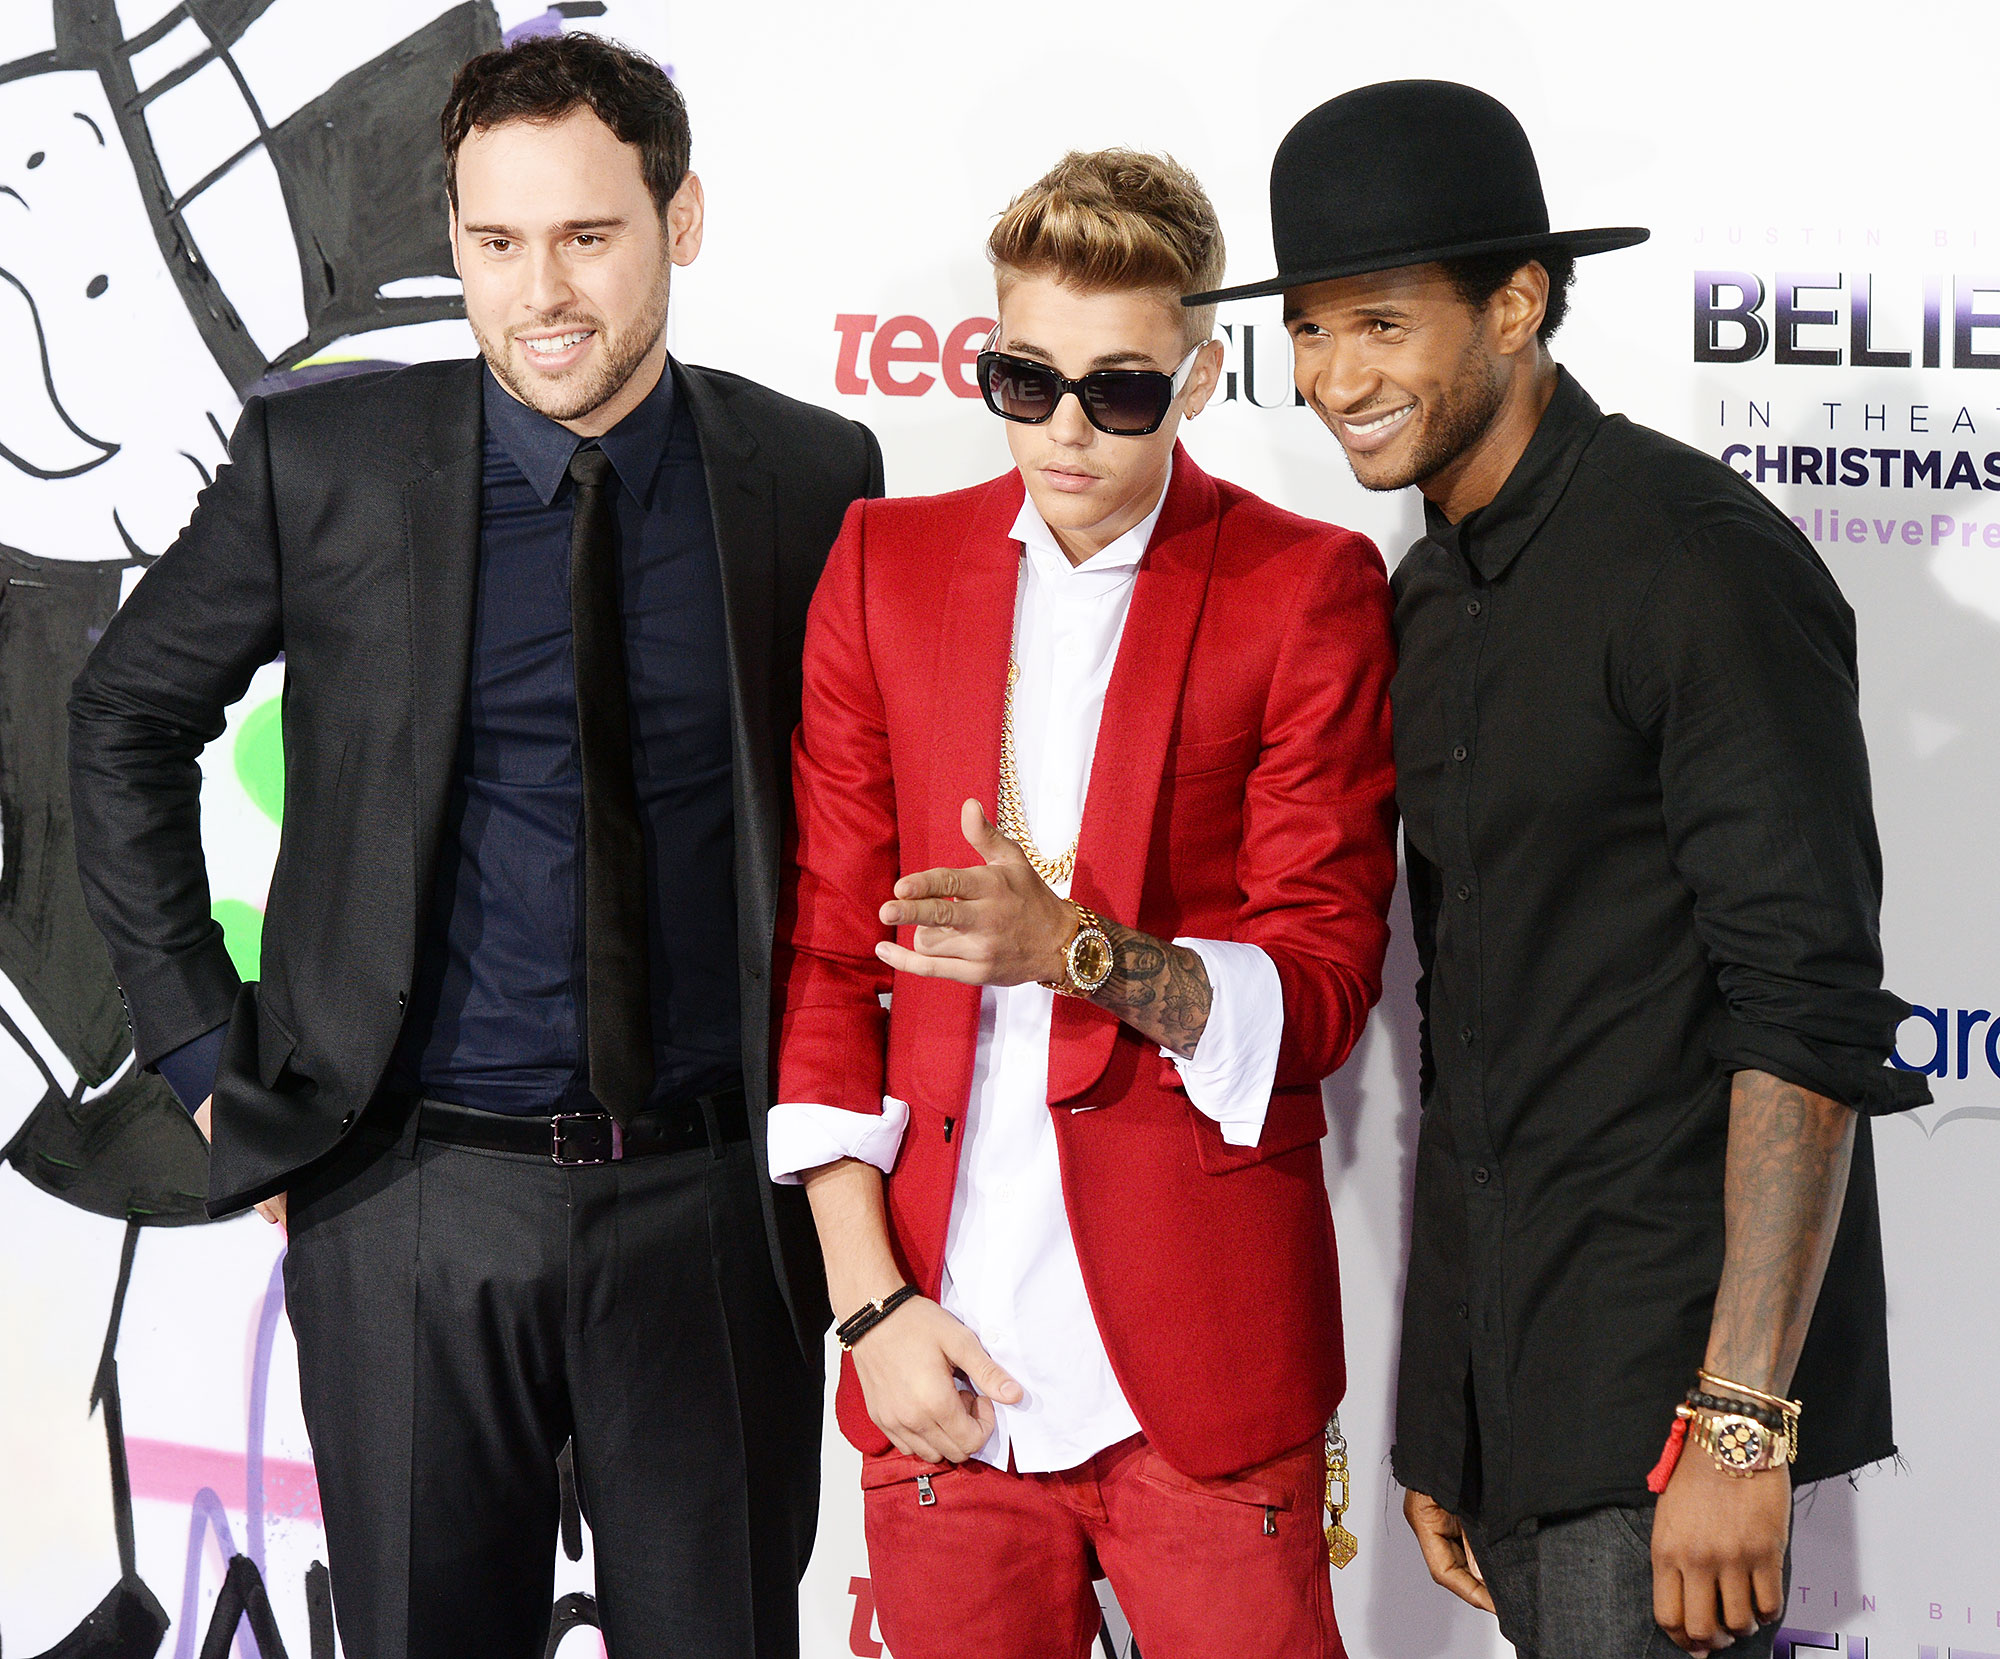 Justin Bieber Through The Years Believe Movie Scooter Braun Usher - Justin Bieber's Believe , which was not a box office hit like Never Say Never , chronicled his Believe tour with the addition of never-before-seen backstage footage.